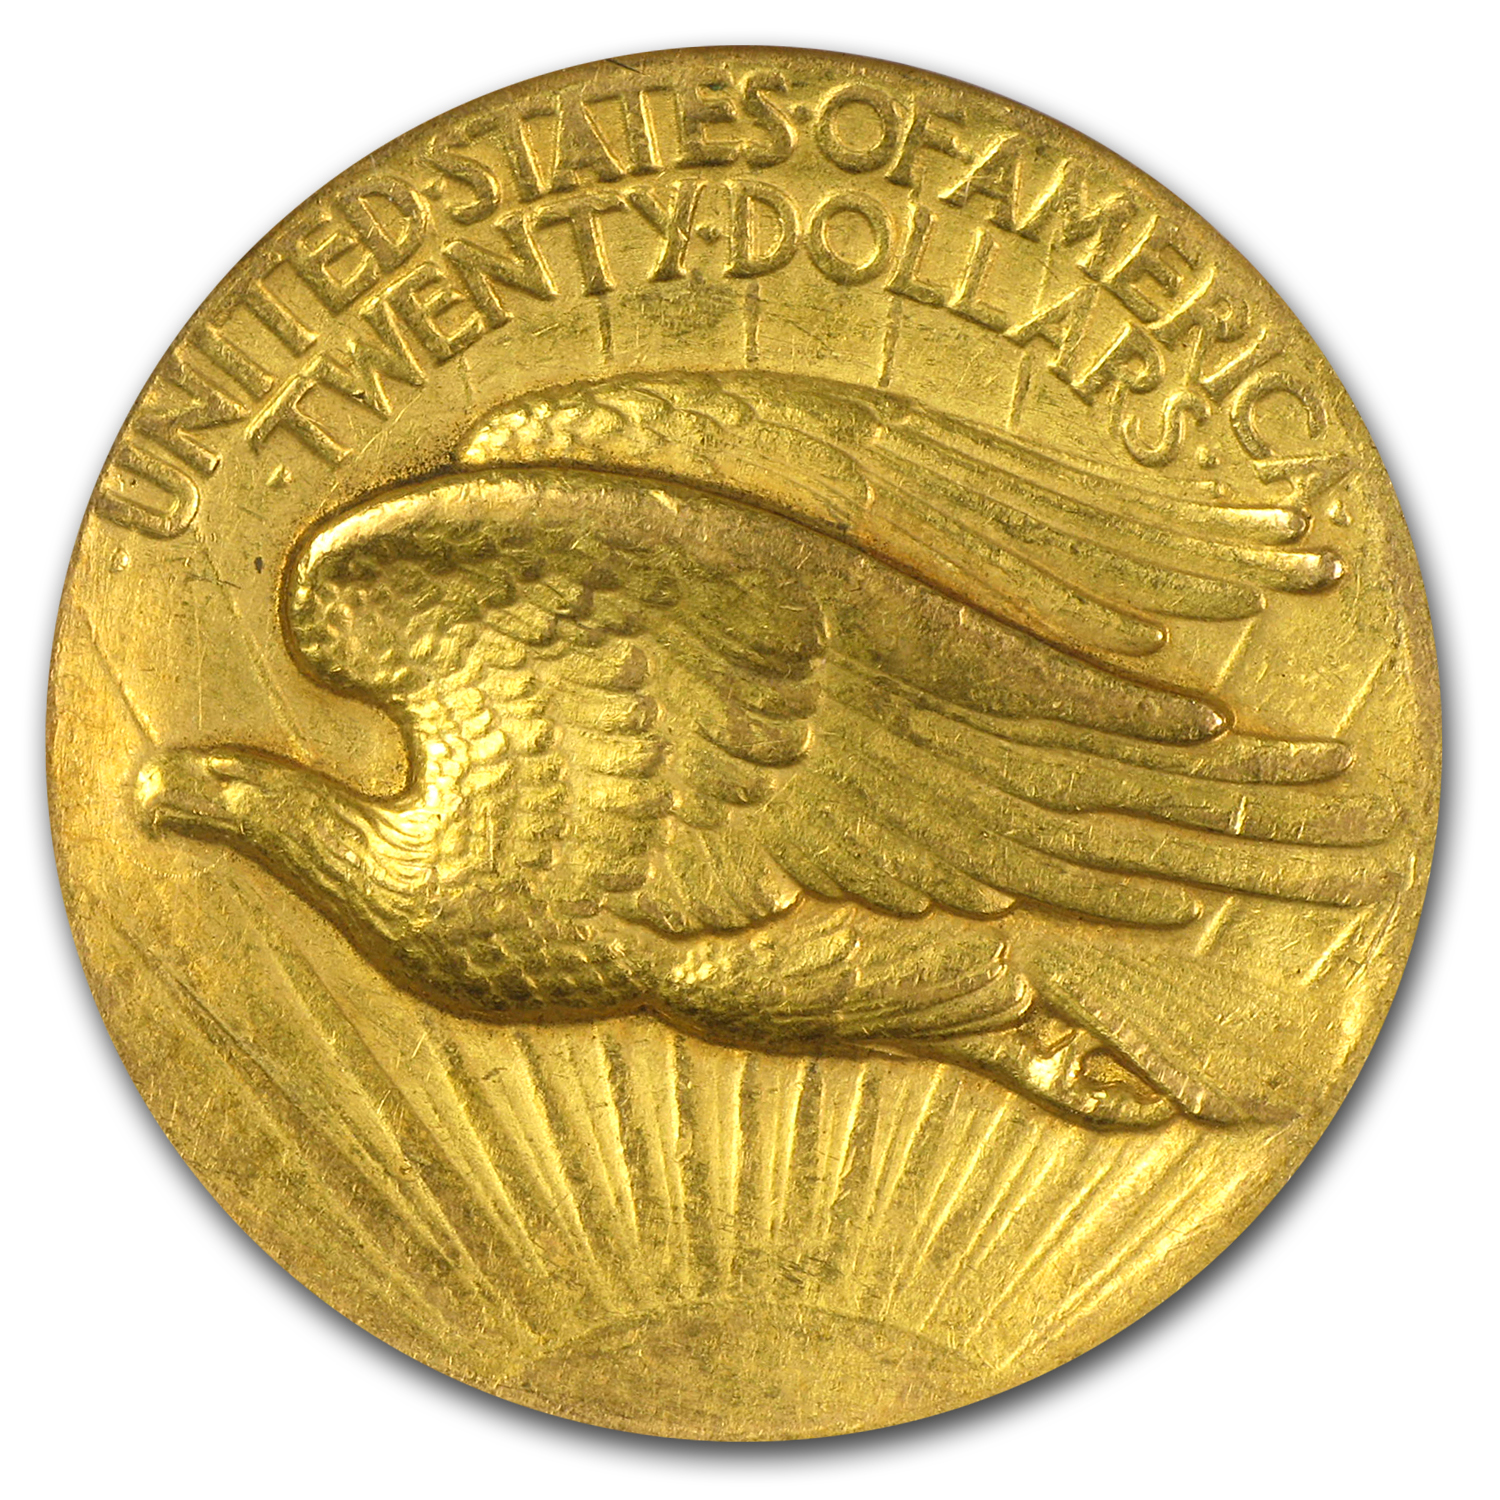 1907 $20 St. Gaudens Gold - High Relief Flat Rim - AU-58 NGC